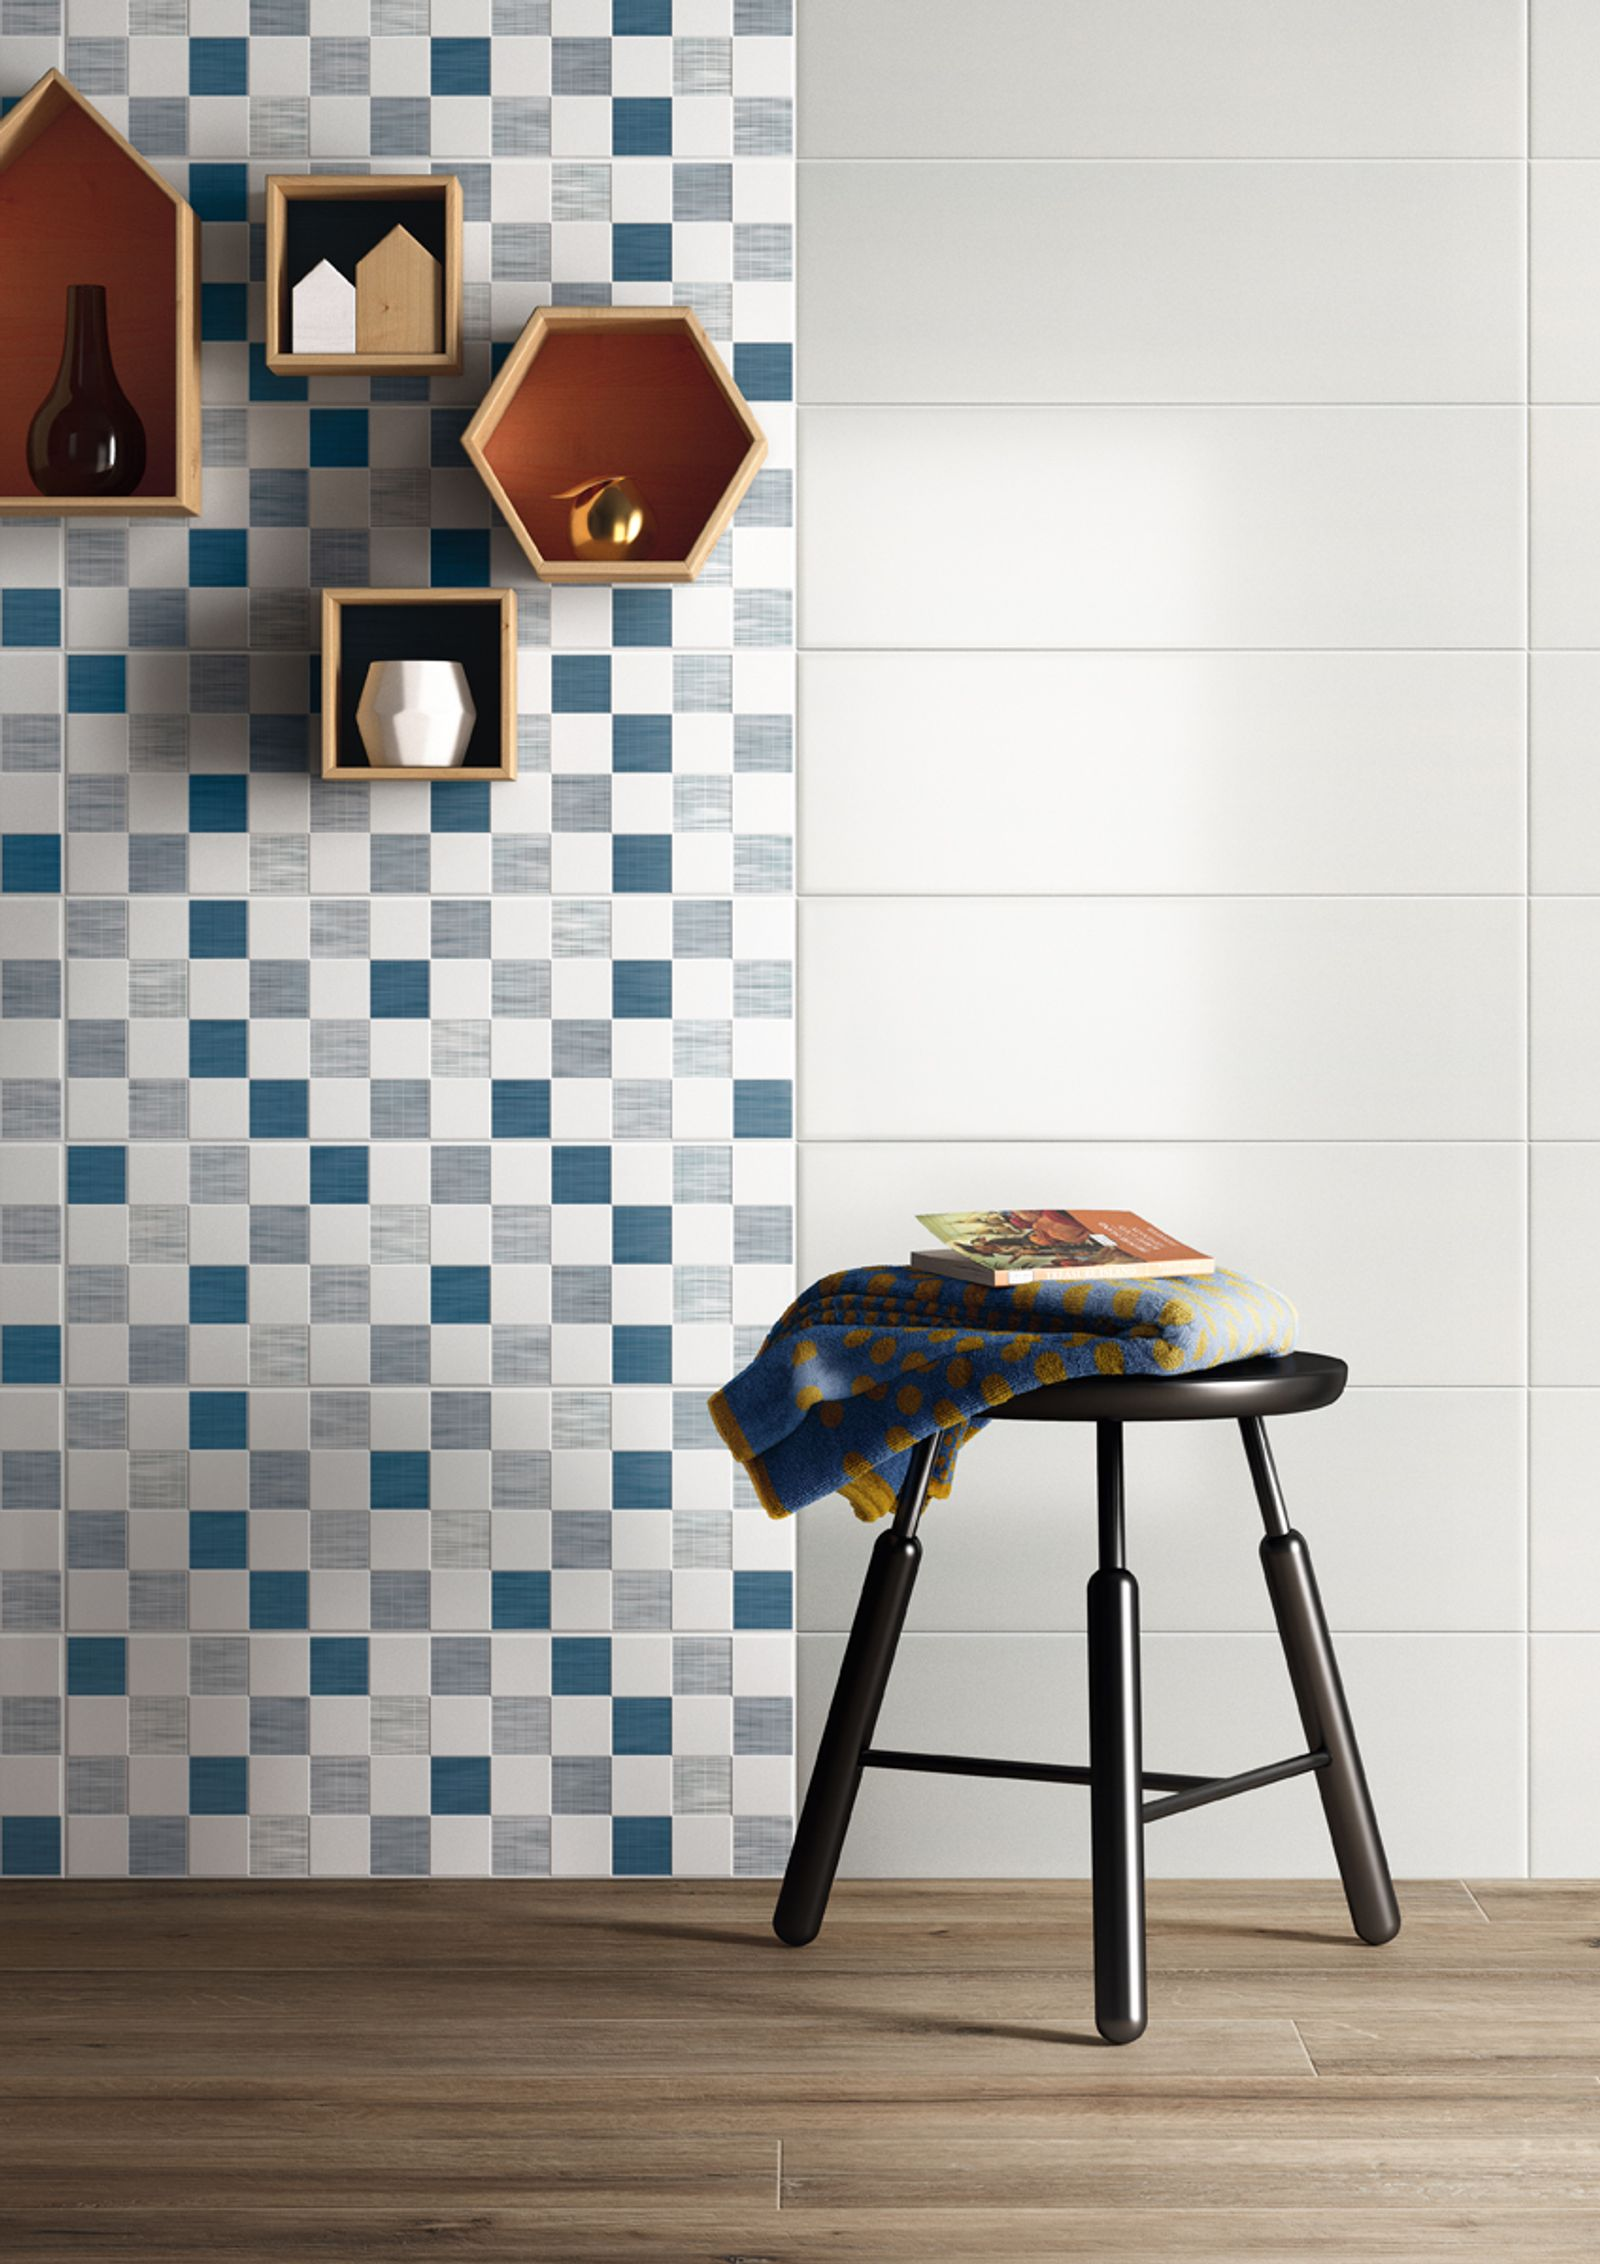 Play! Play and combine the tiles any way you want! For bright and original wall tiling! Play is Imola's new double fired tile collection, made in size 20x60 cm, with a satin finish surface and extremely soft surface appearance that is the essence of the collection. The effect is a solid colour that feels good.Play makes you want to get creative. The truly neutral white can be combined with six backgrounds, in current, modern shades (green, lavender, mauve, dark blue, dove-grey, yellow) and a wide range of decorations (polka dots, geometric elements, lines) for a home that is relaxed and bursting with colour.  - AM PLAY 2 - Imola Ceramica